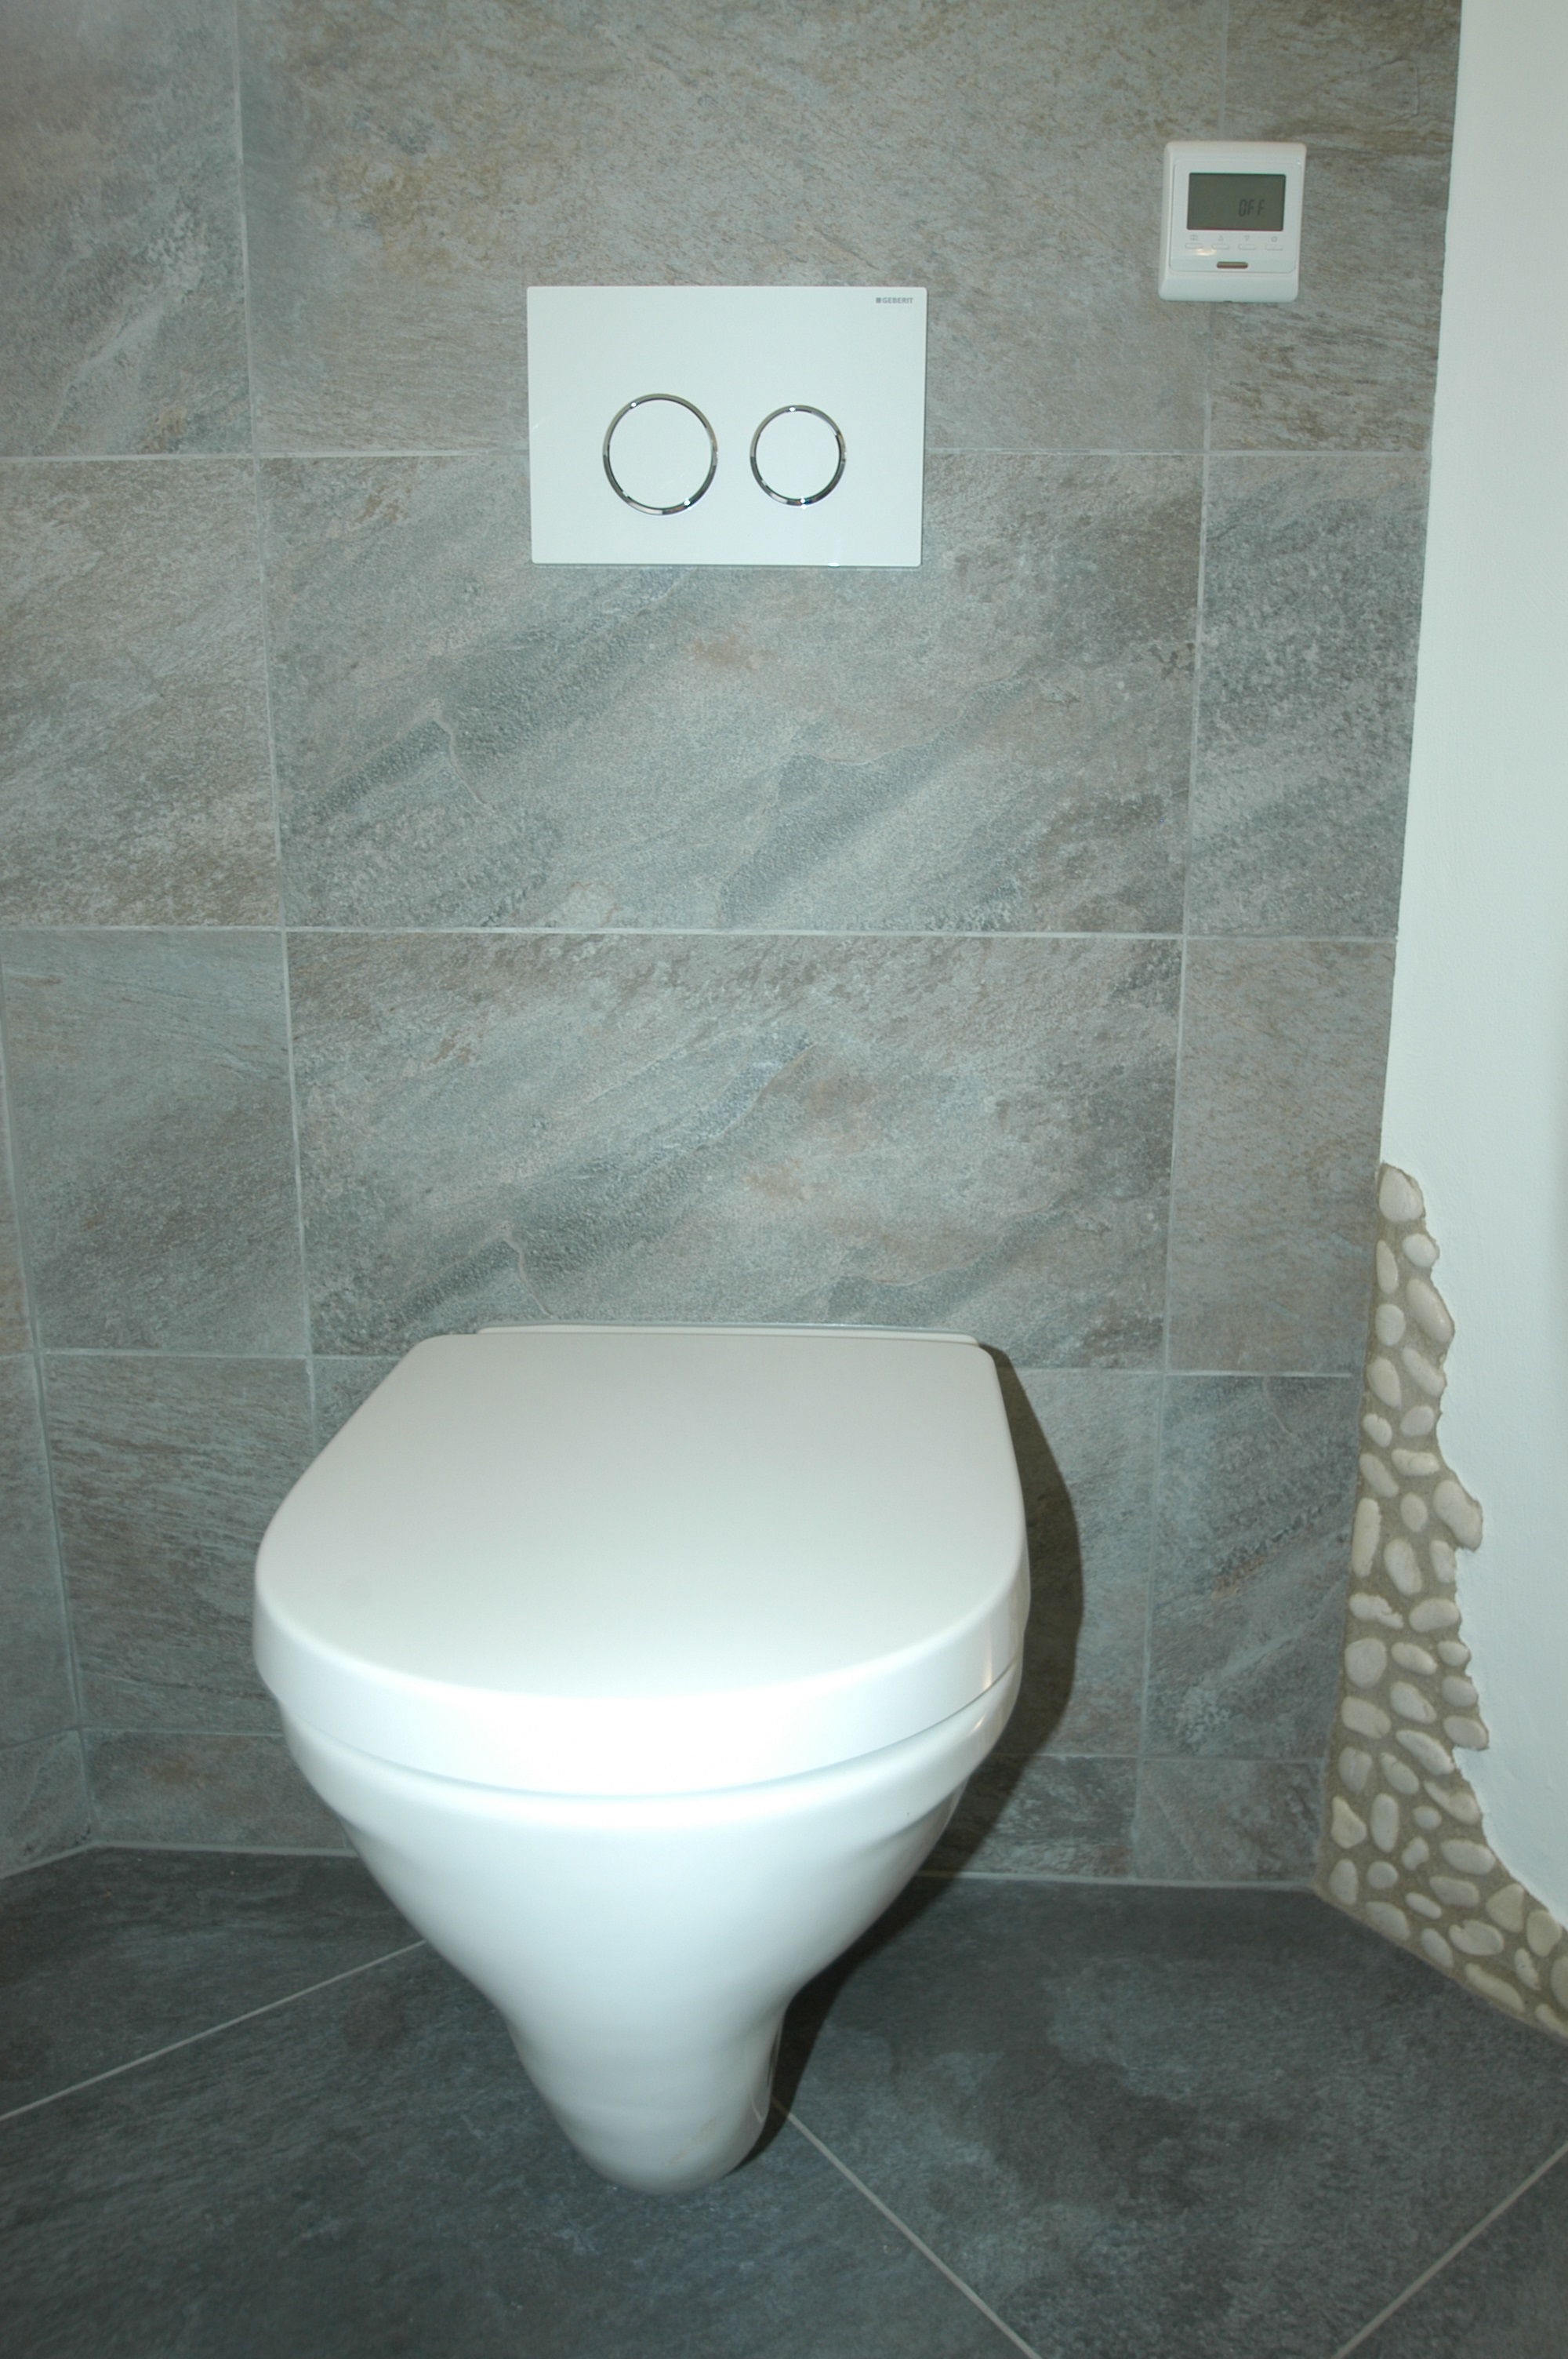 Wand-WC-Anlage